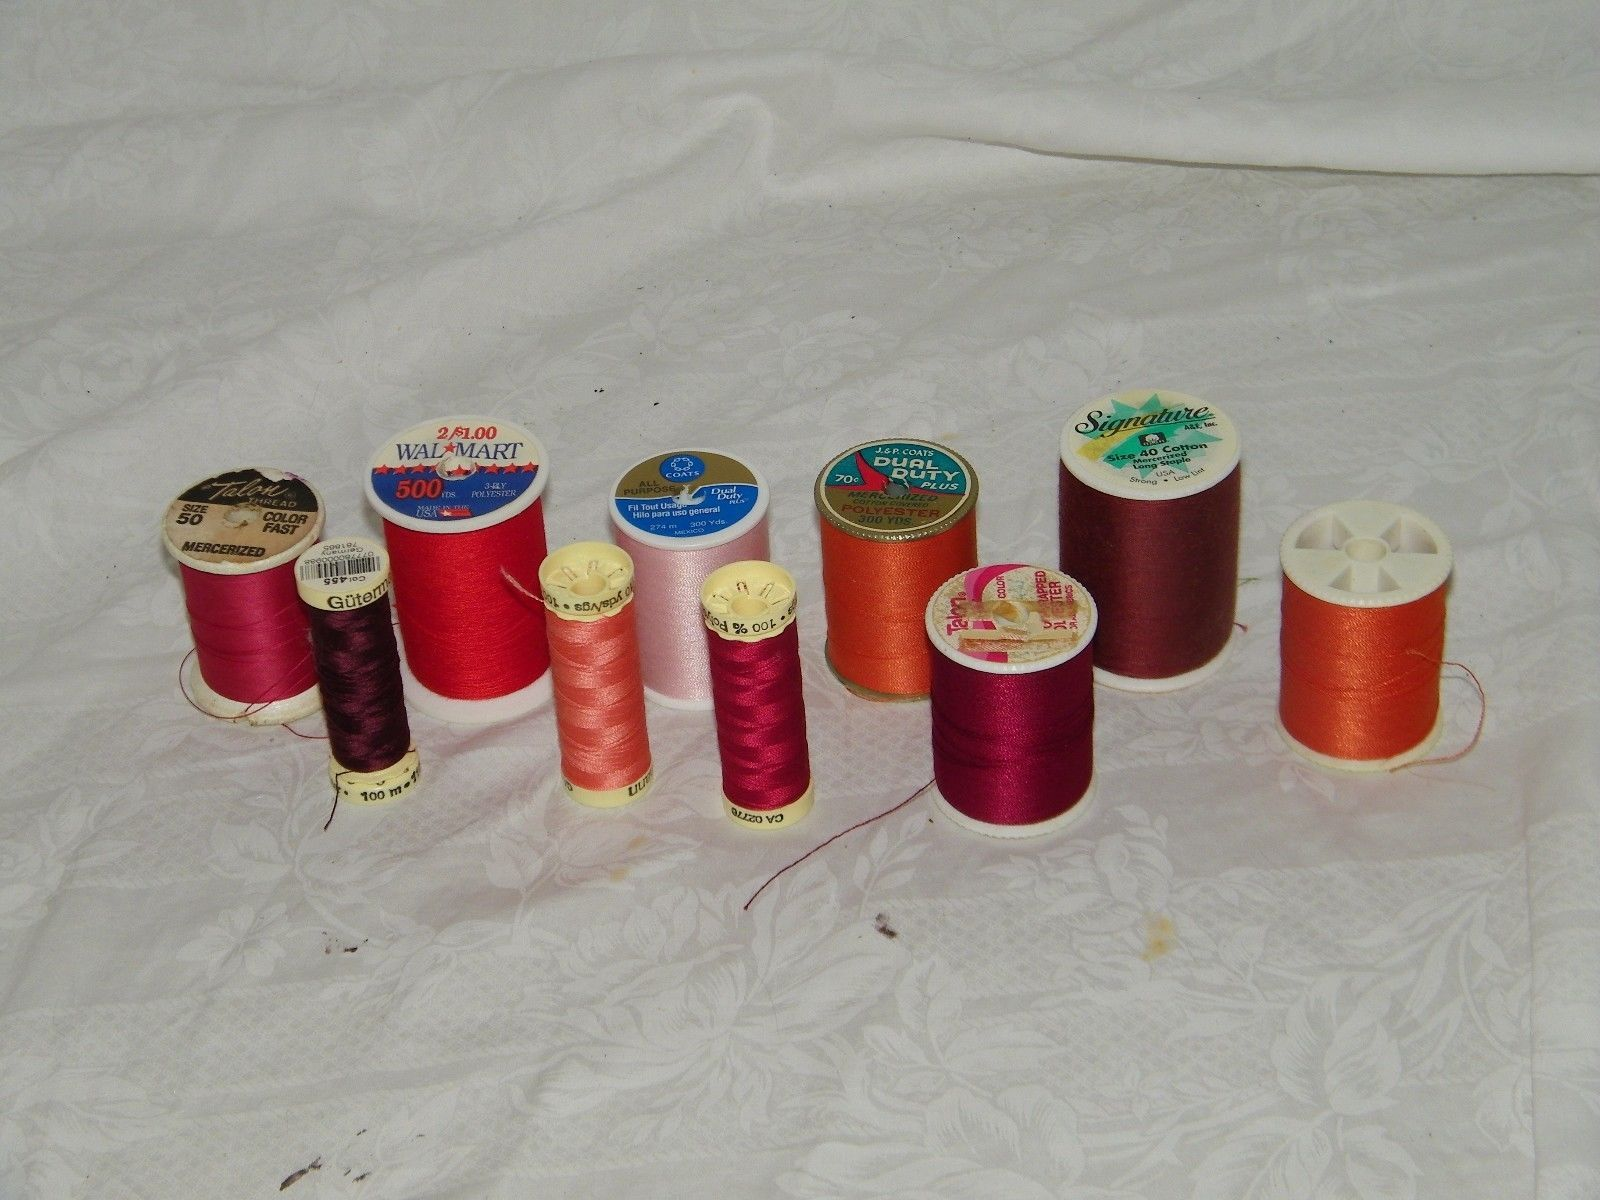 Sewing Thread 10 Spools Gutermann Quilting 18399 Coats Clark Signature